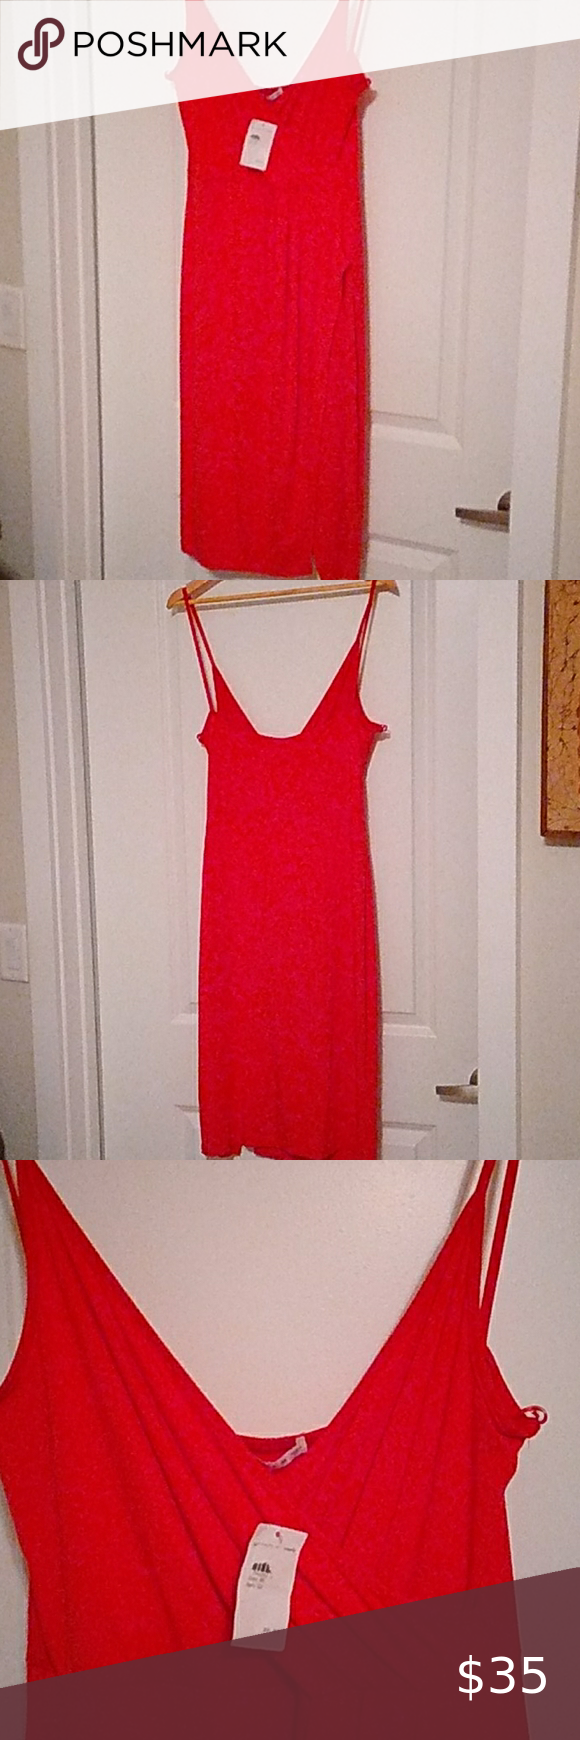 Fraiche By J Red Dress In 2021 Red Dress Nordstrom Dresses Clothes Design [ 1740 x 580 Pixel ]